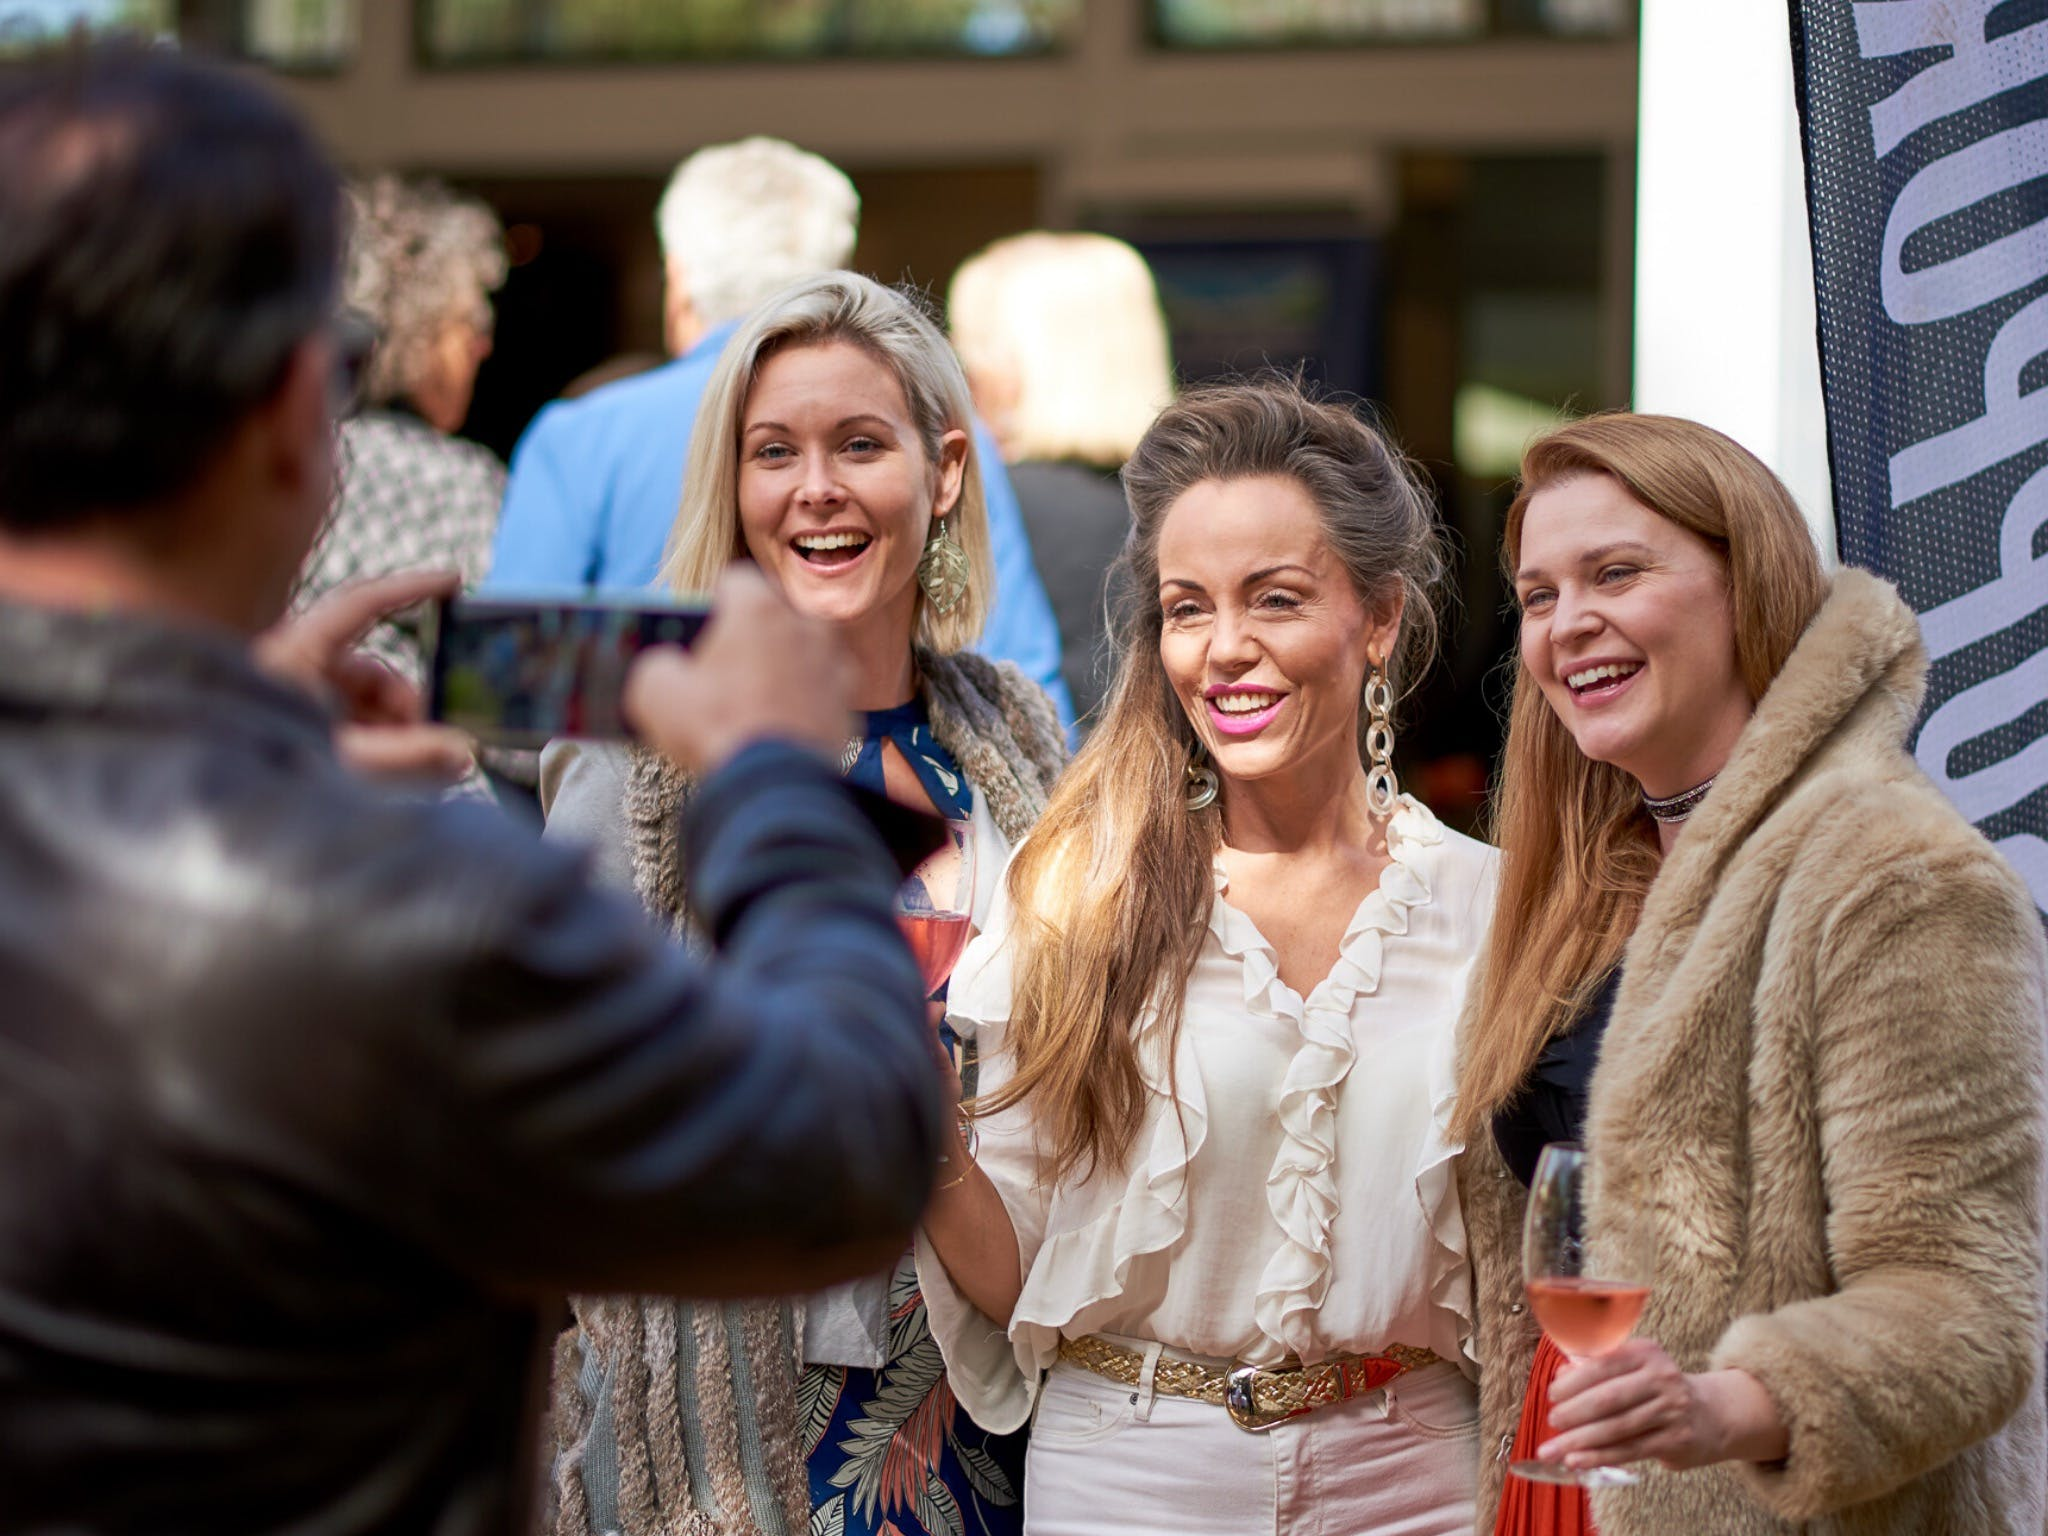 CinefestOZ Film Festival - New South Wales Tourism